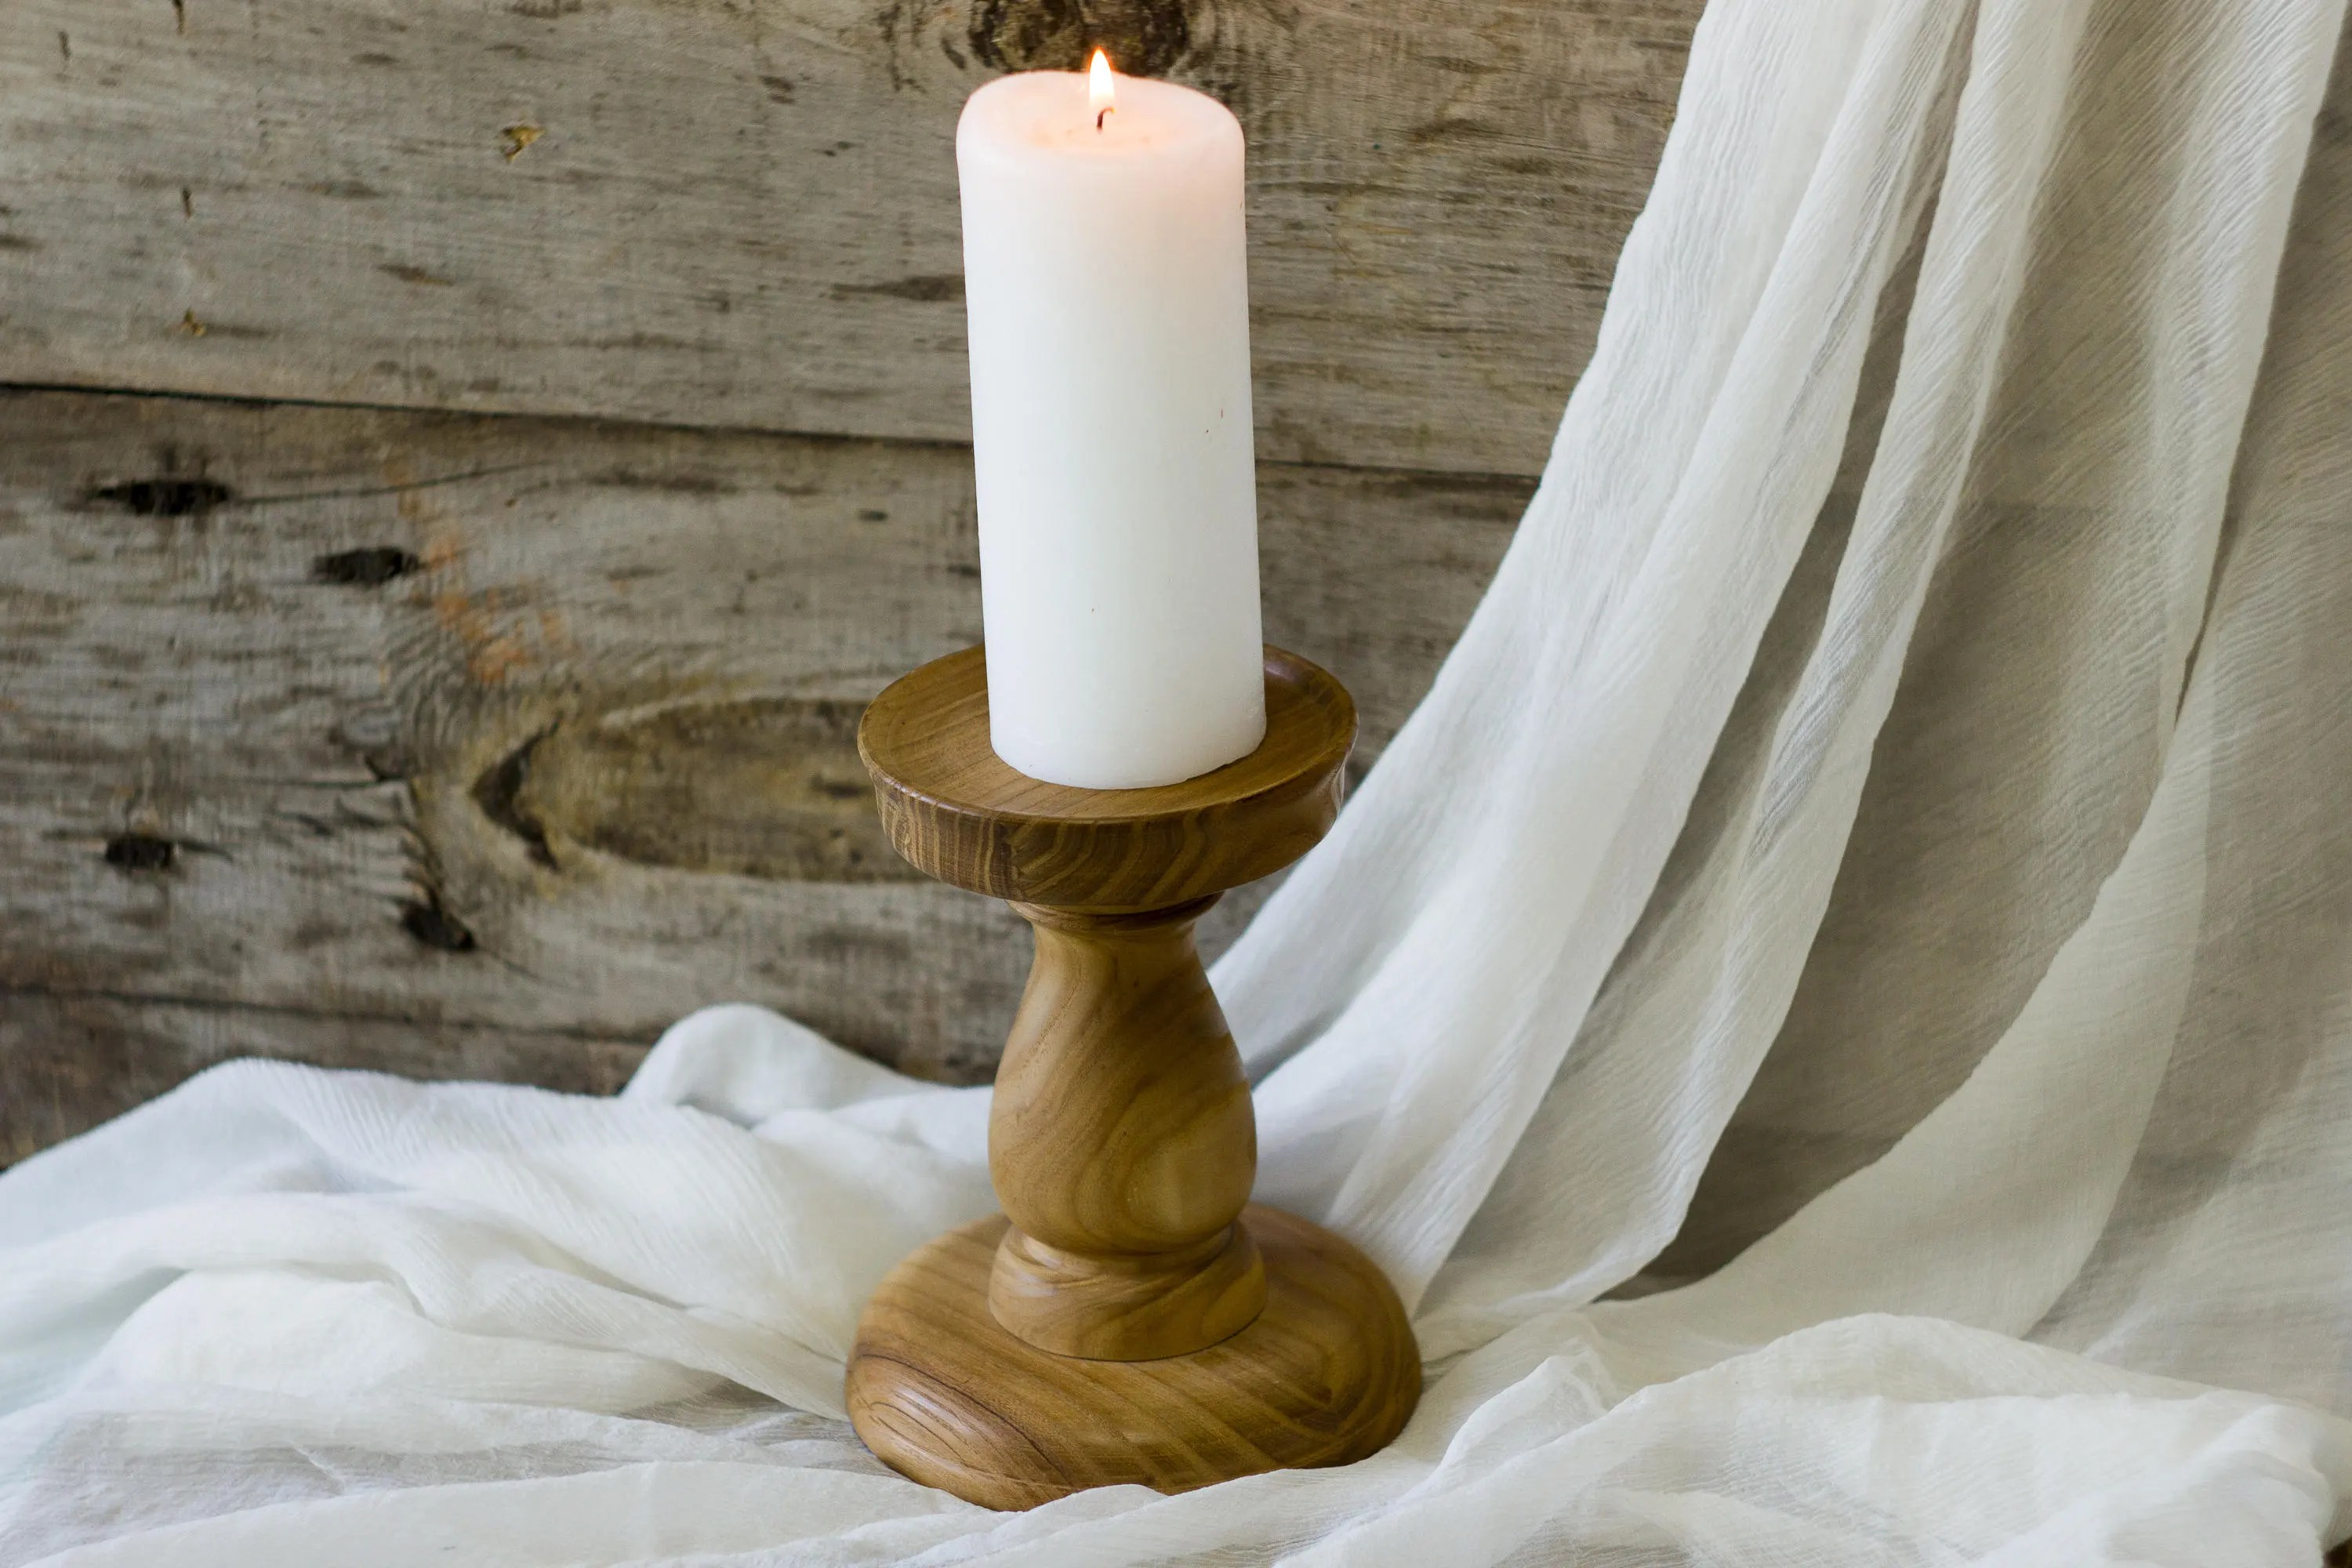 Wooden Candle Holders Australia Wooden Candle Holder Rustic Natural Wood Decor Handmade